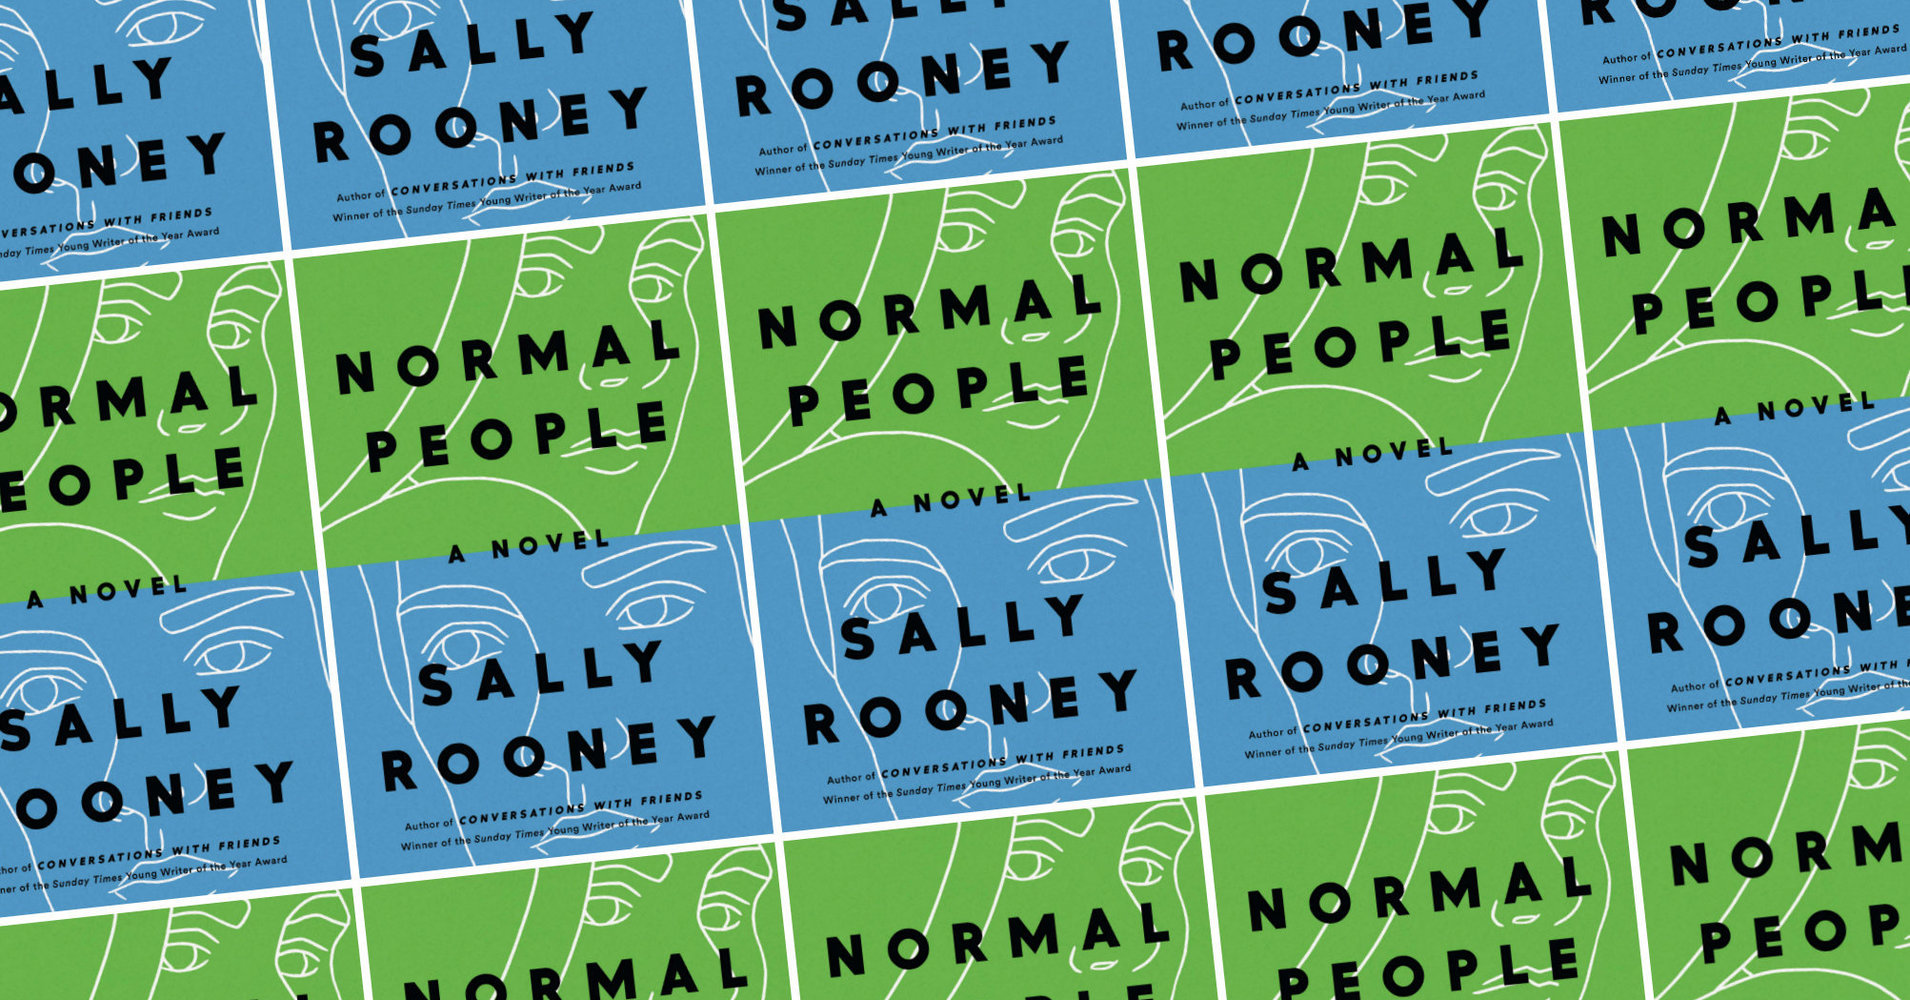 The Public Private Life Of Young Love In Sally Rooney's 'Normal People'